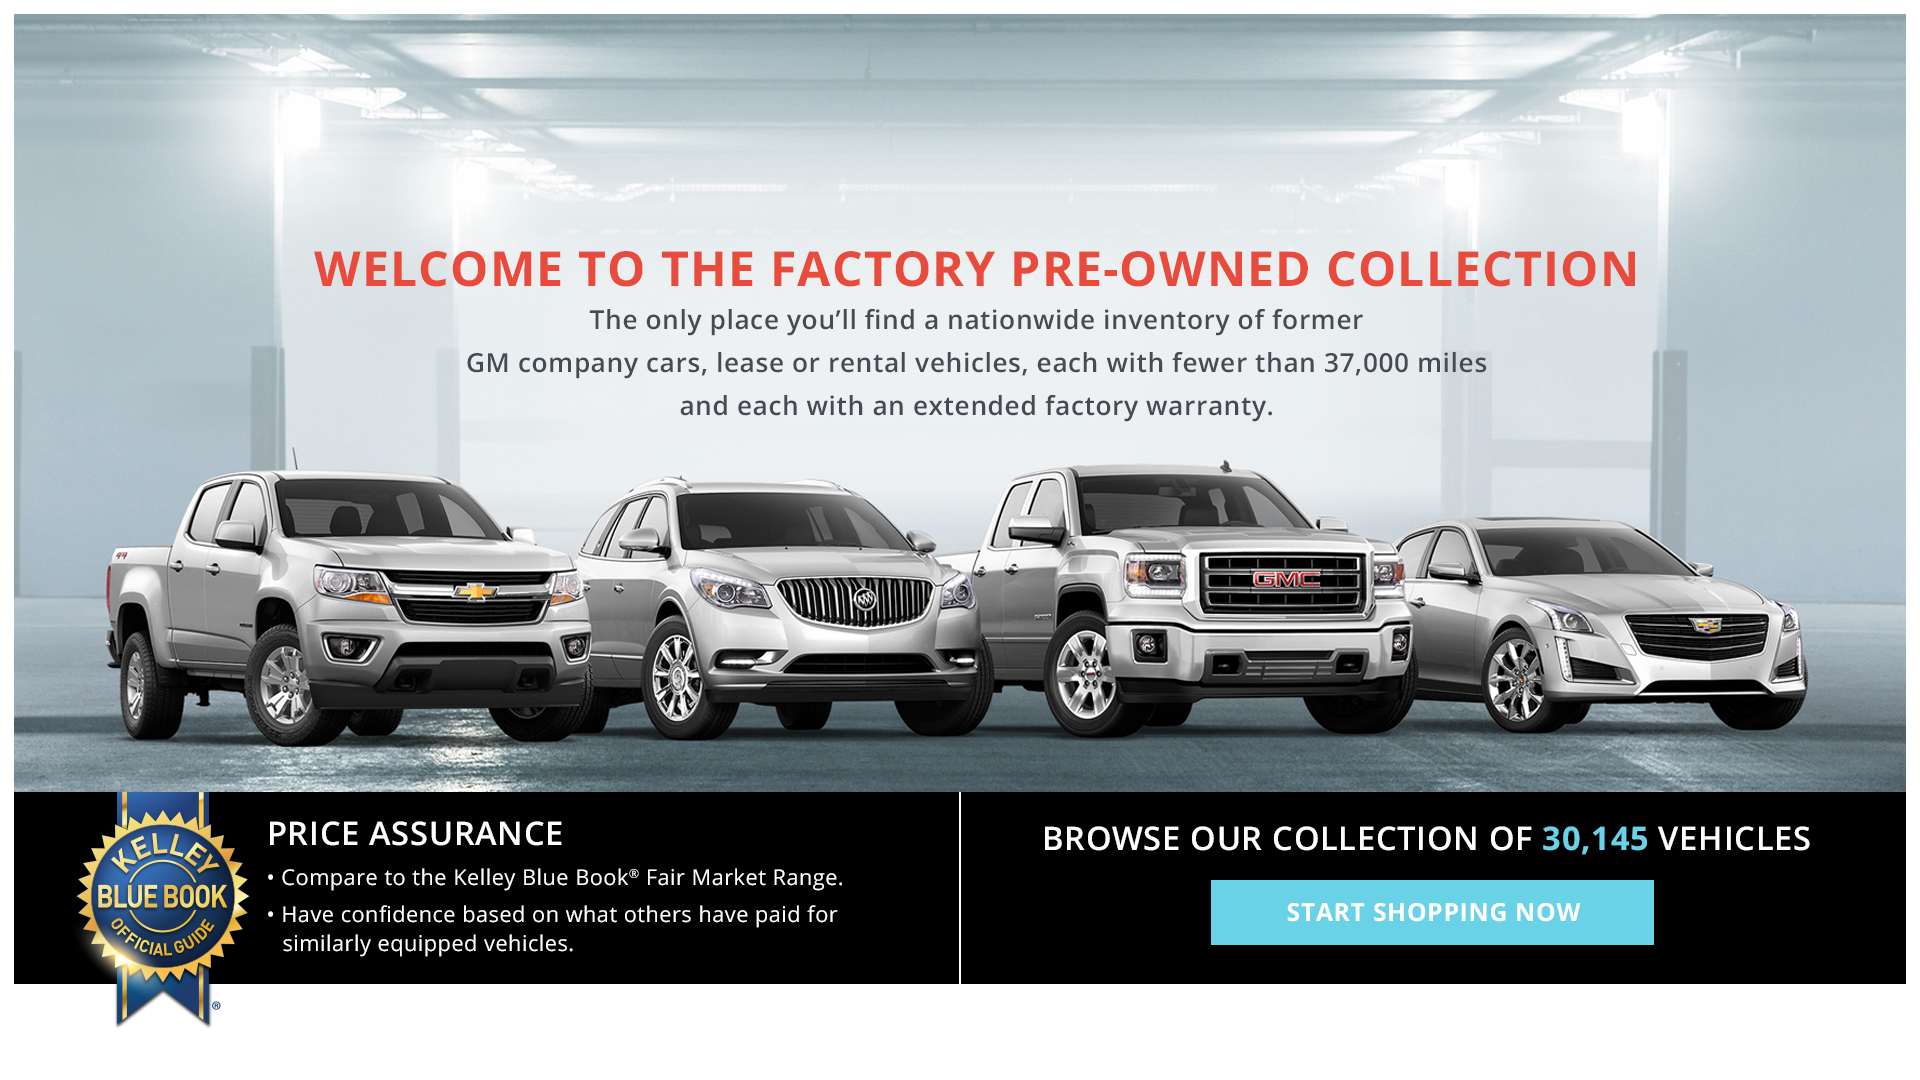 Used Car Website Luxury Mercedes Benz Follows the Lead Of Tesla Gm Moving Sales Online